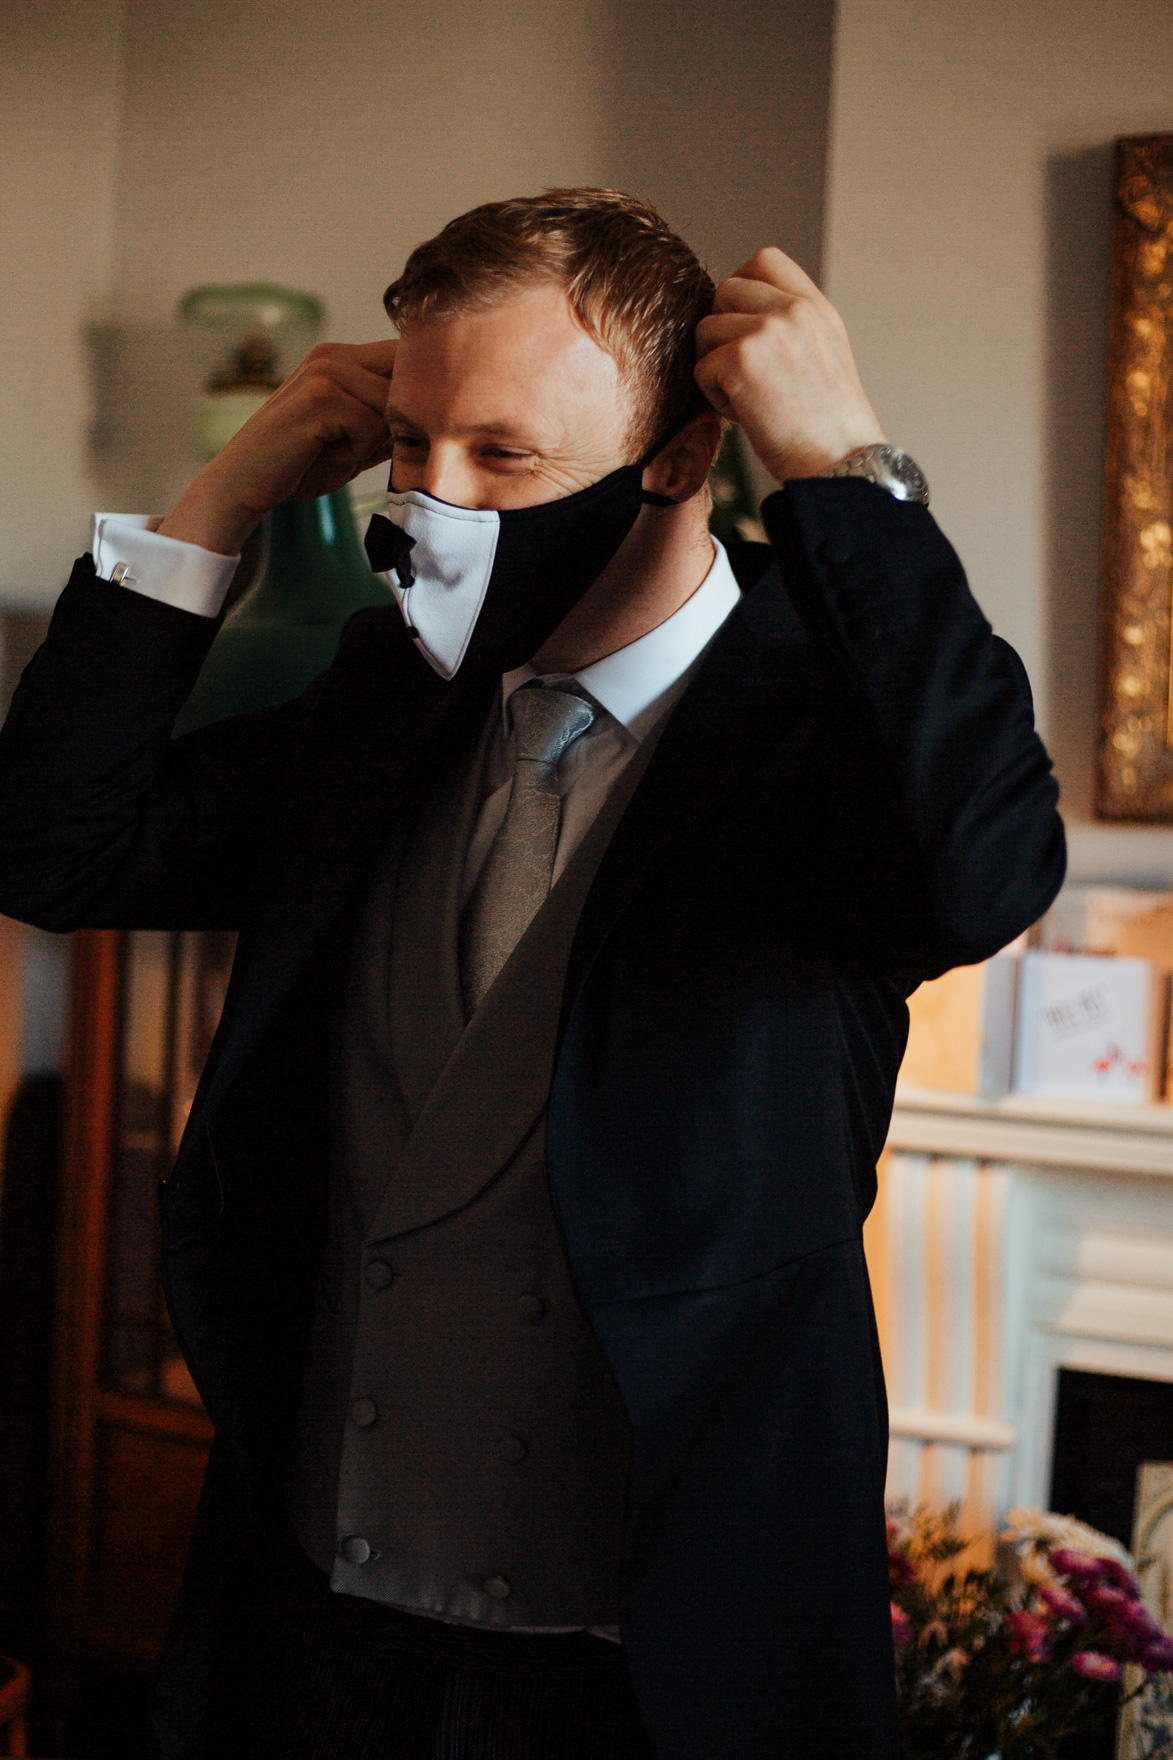 A man wearing a suit and tie talking on a cell phone